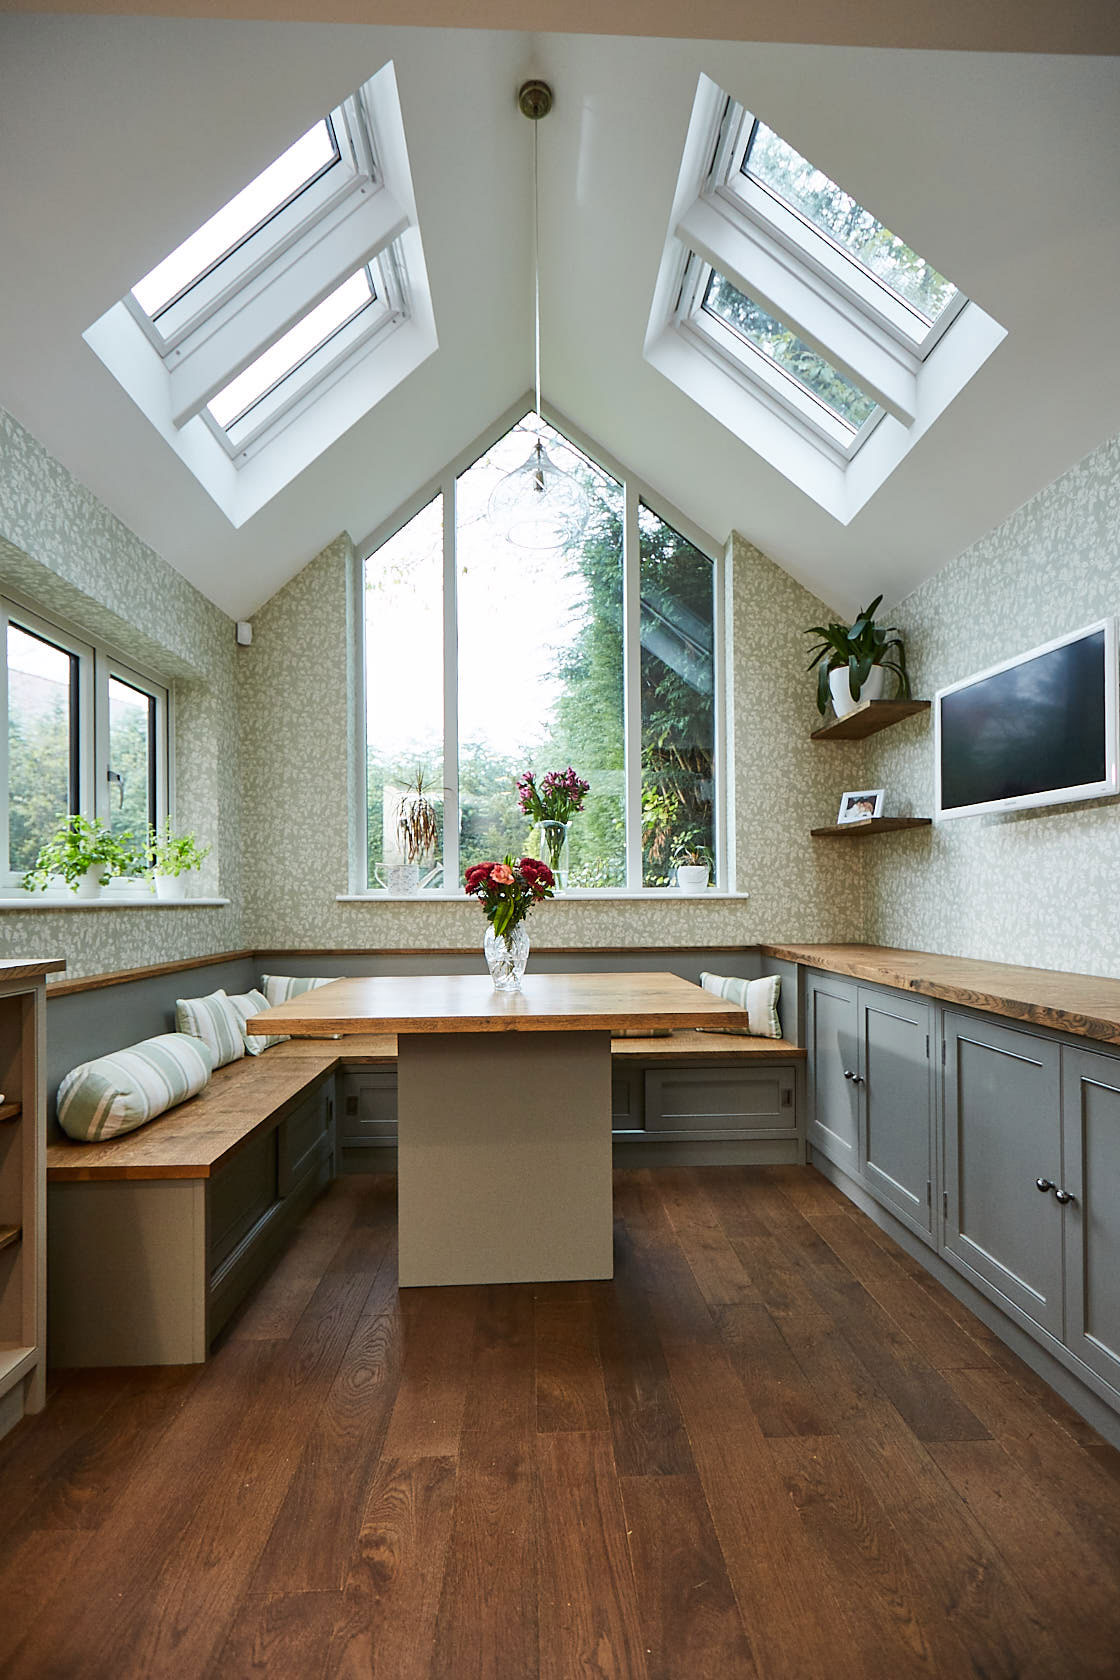 Bespoke kitchen table with fitted booth seating around